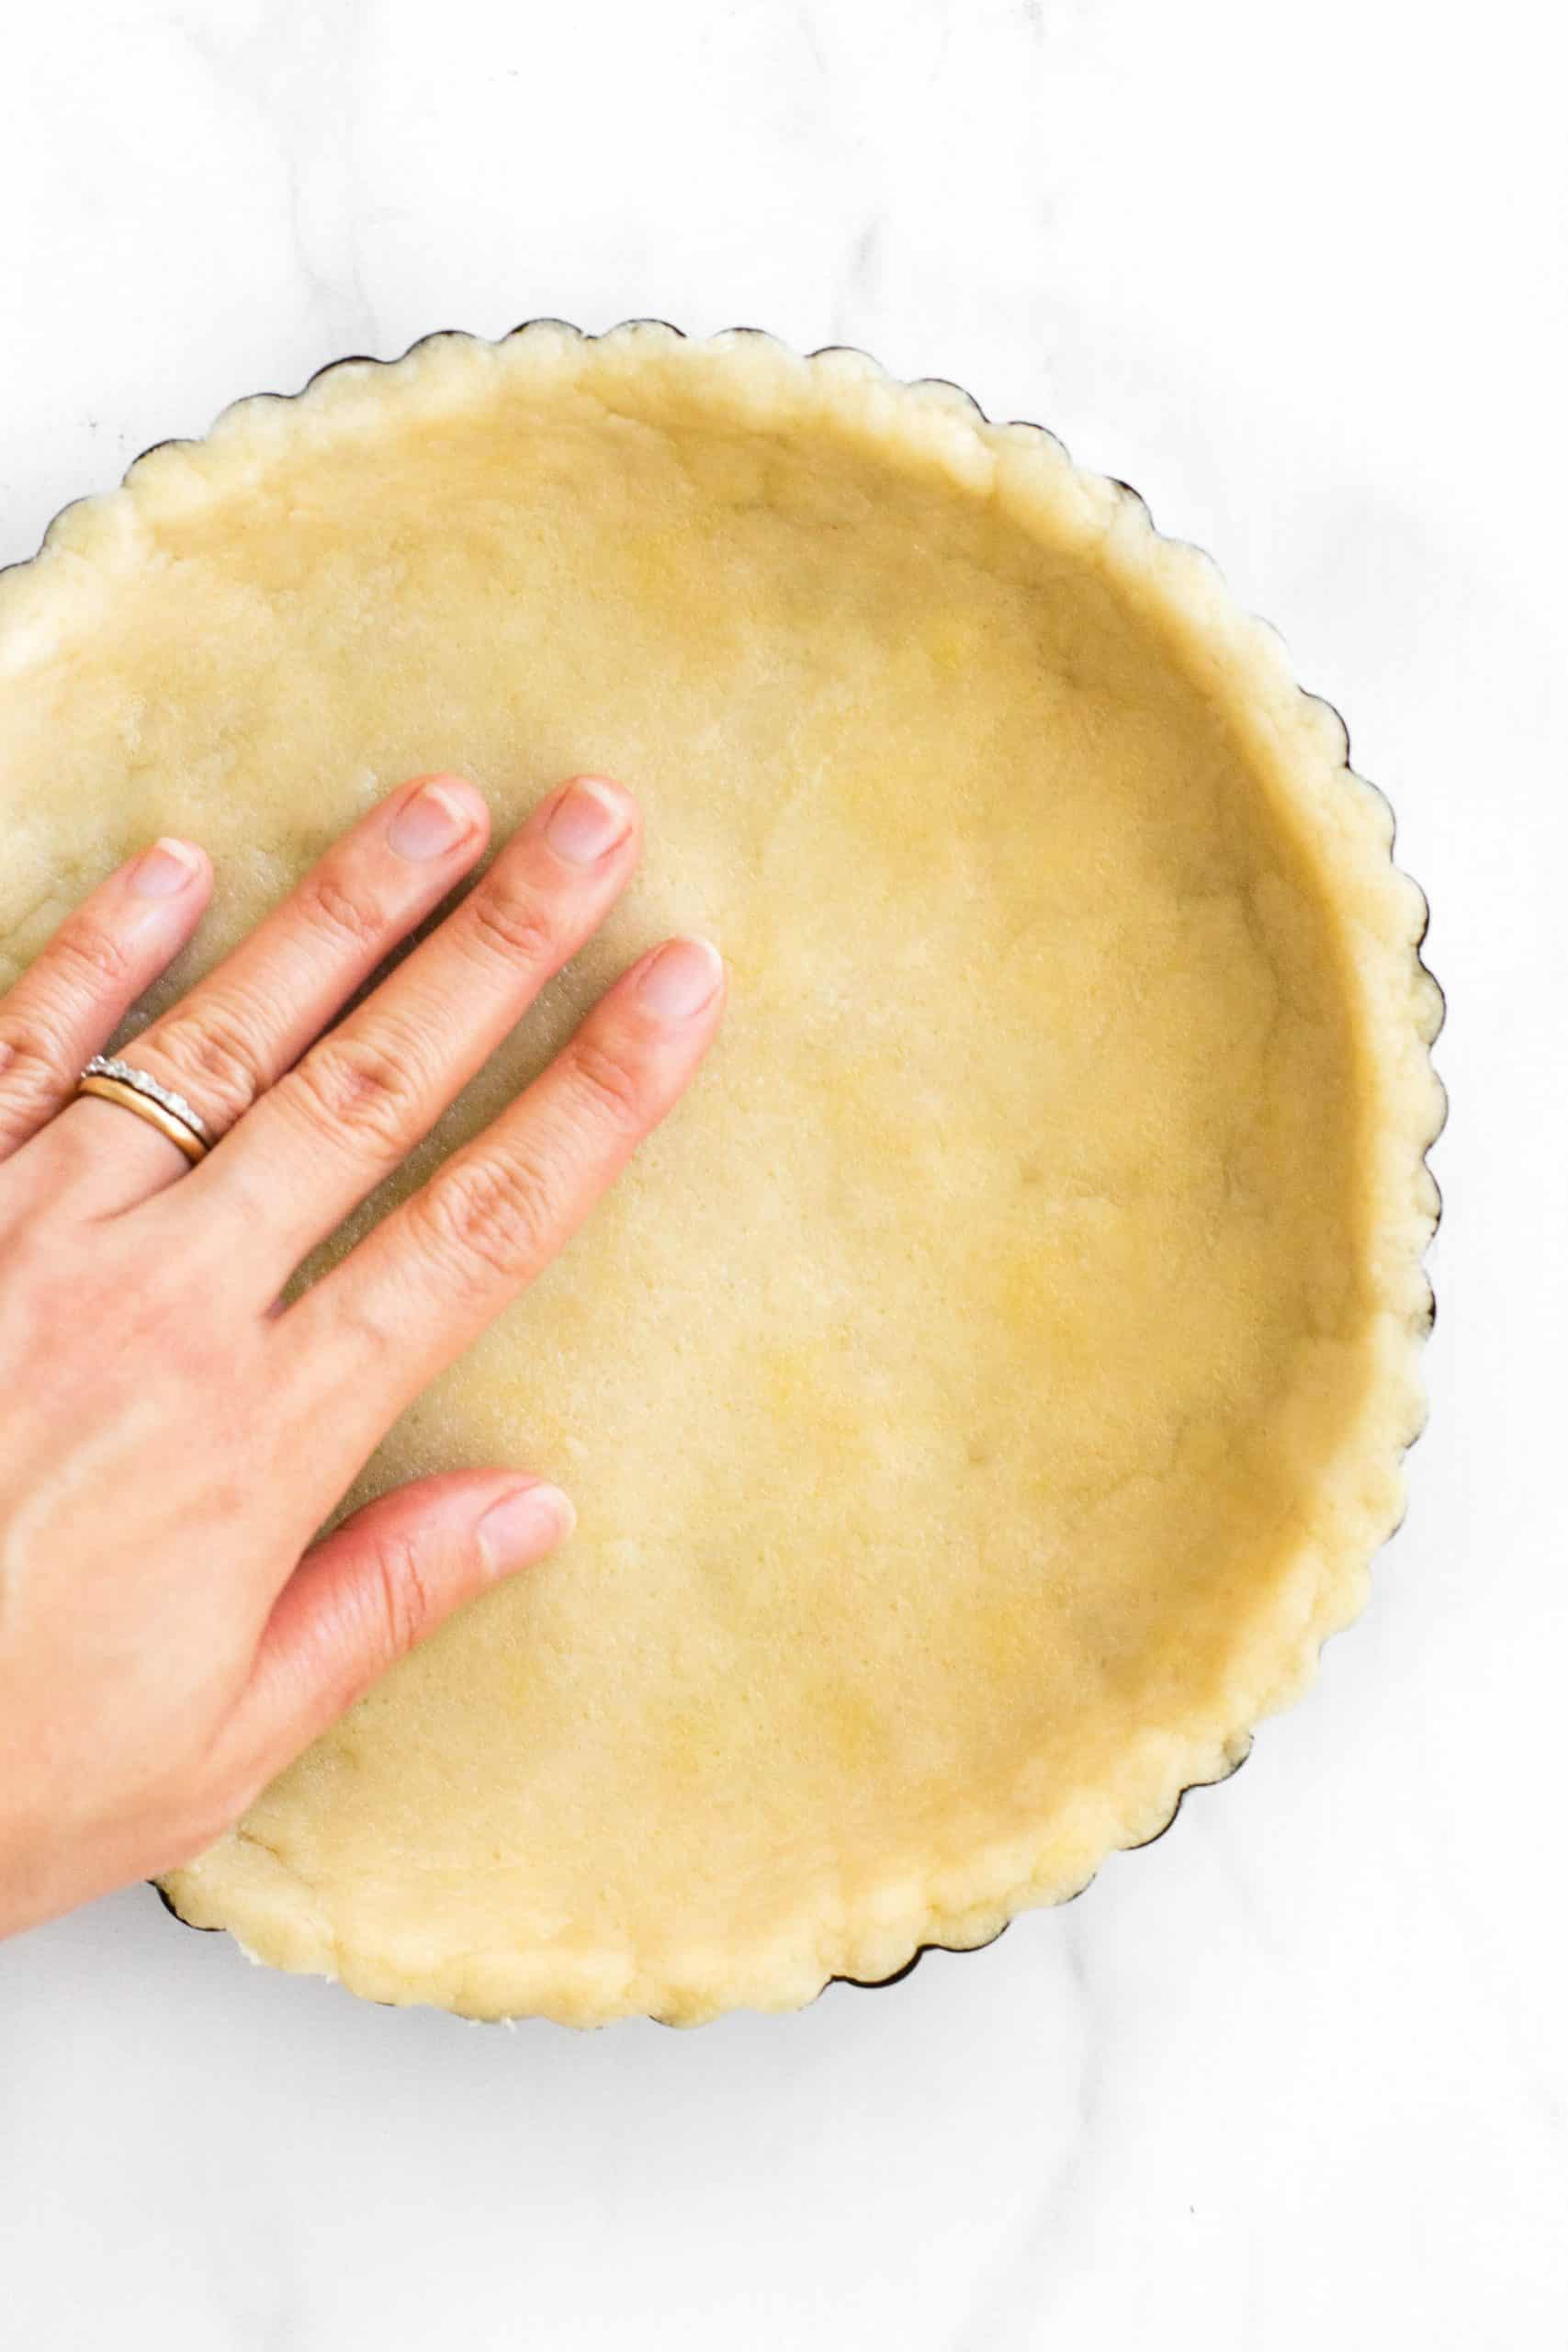 Pressing pie crust dough into a pie tin.